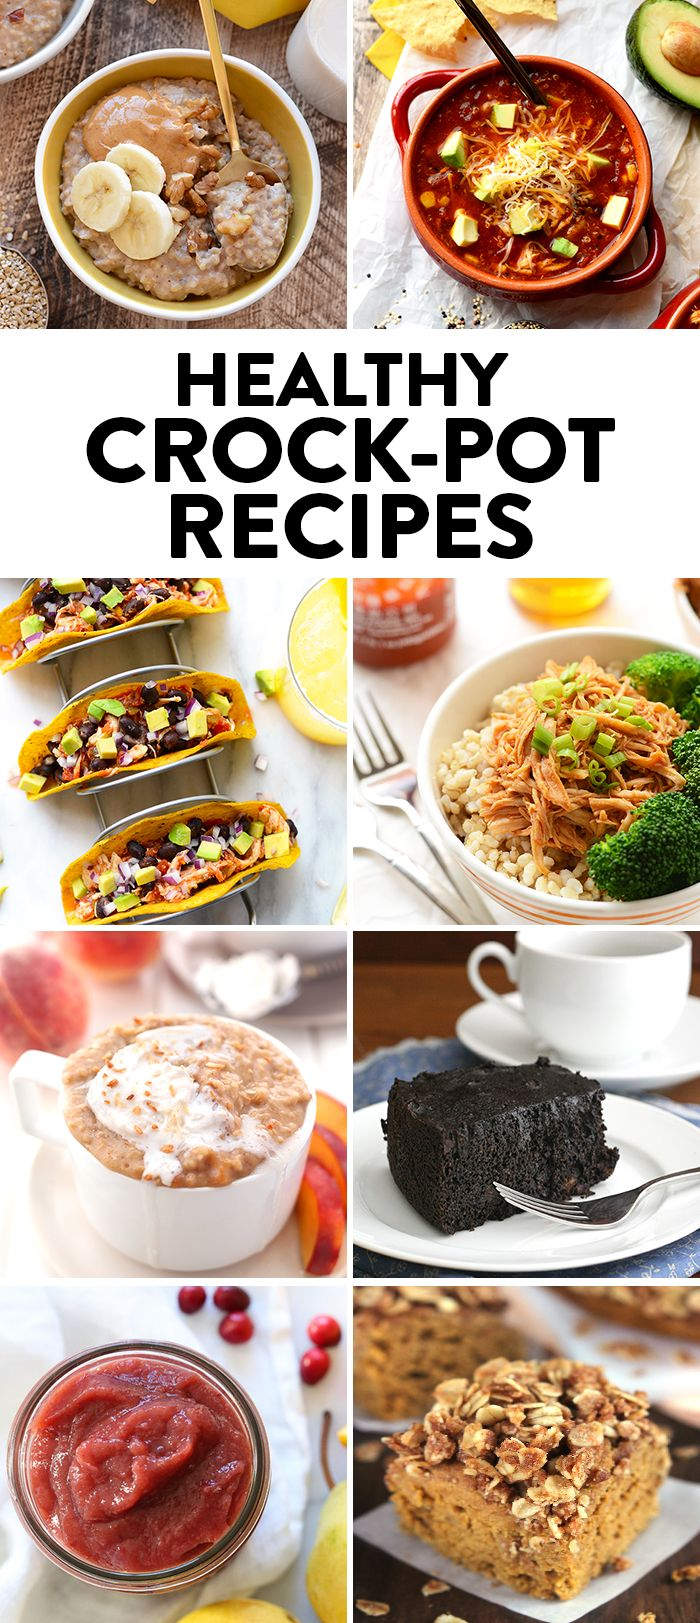 529 best images about slow cooker recipes on pinterest for Best healthy chicken crock pot recipes